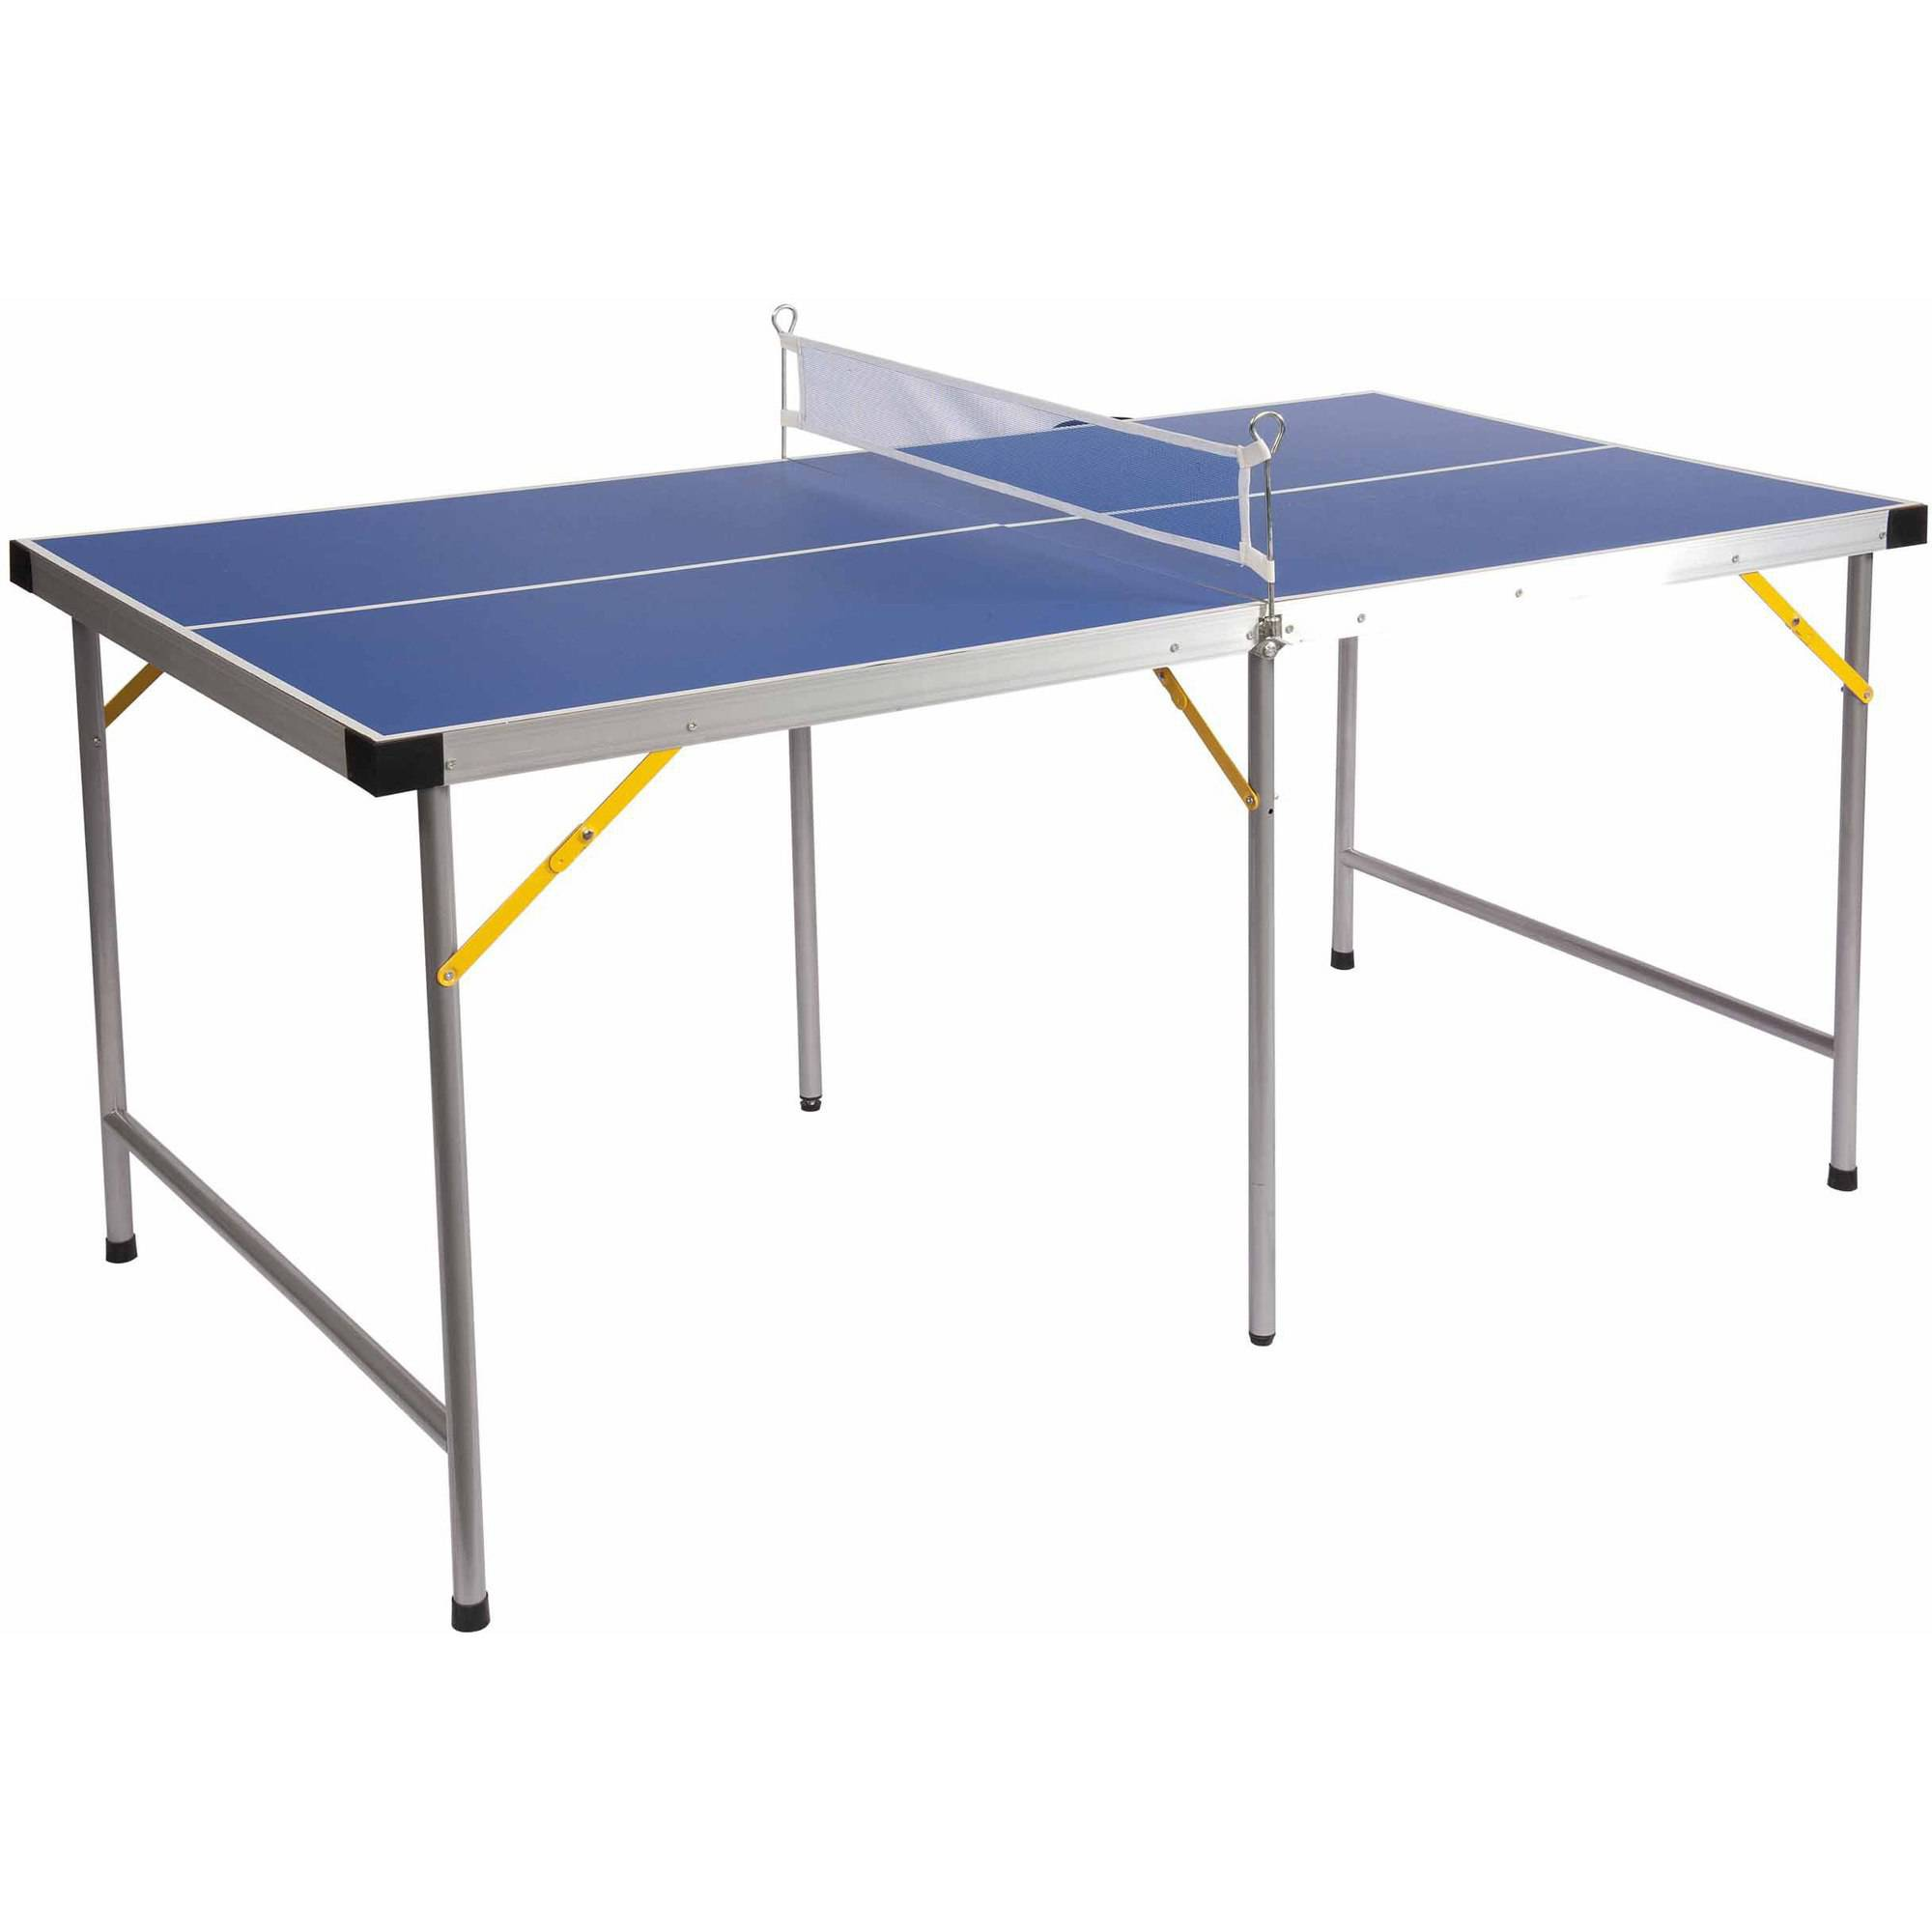 Butterfly Compact 19 Table Tennis Table, Blue   Walmart.com